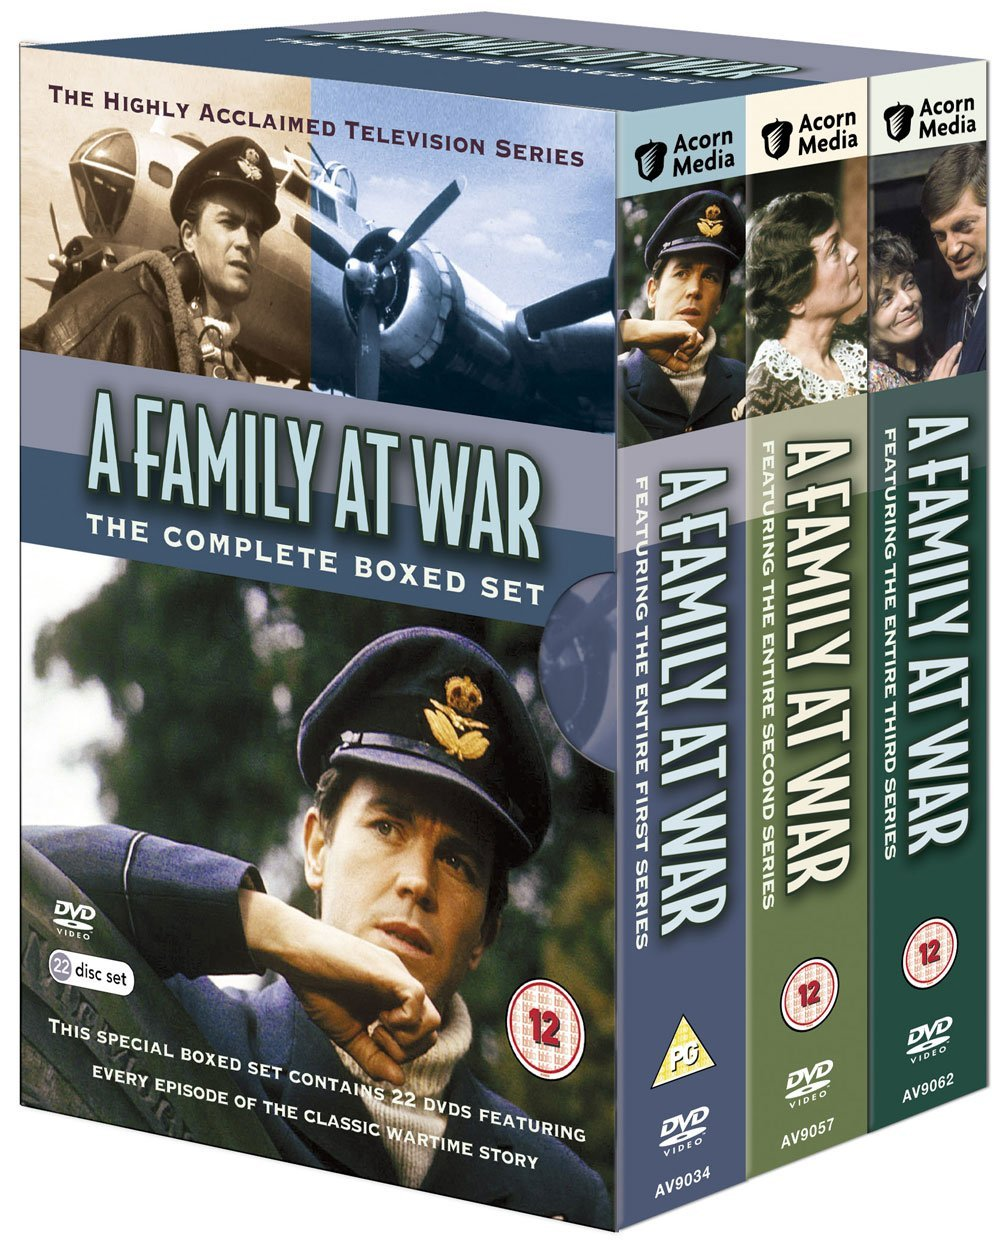 A Family At War - Complete Boxed Set (22 Discs)